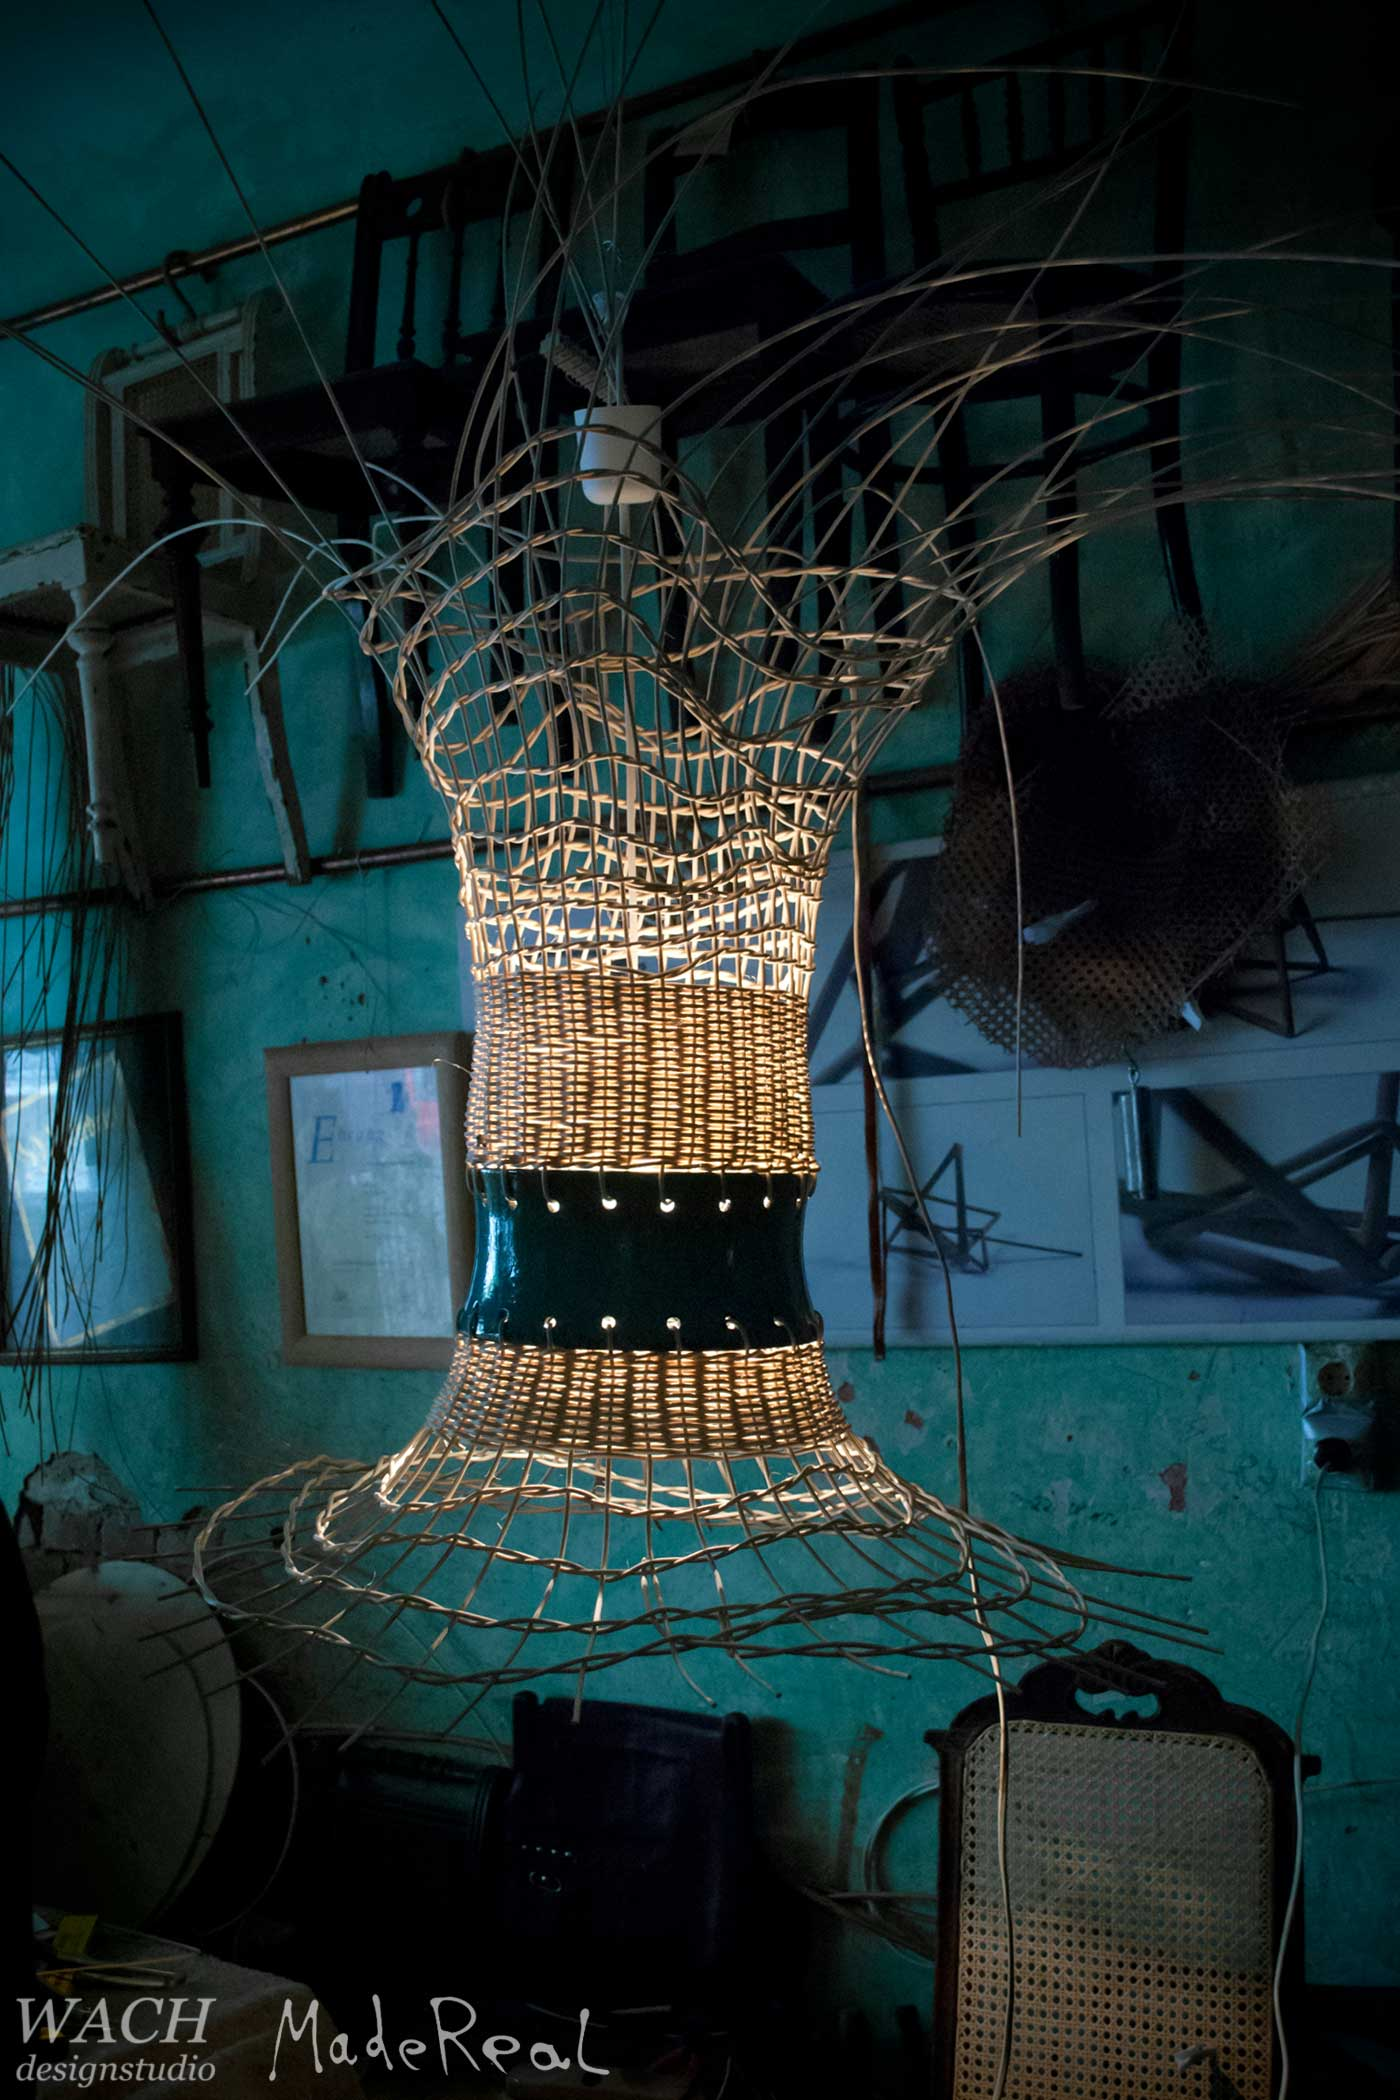 MadeReal Lampa in the studio of Fred Jacob in Berlin